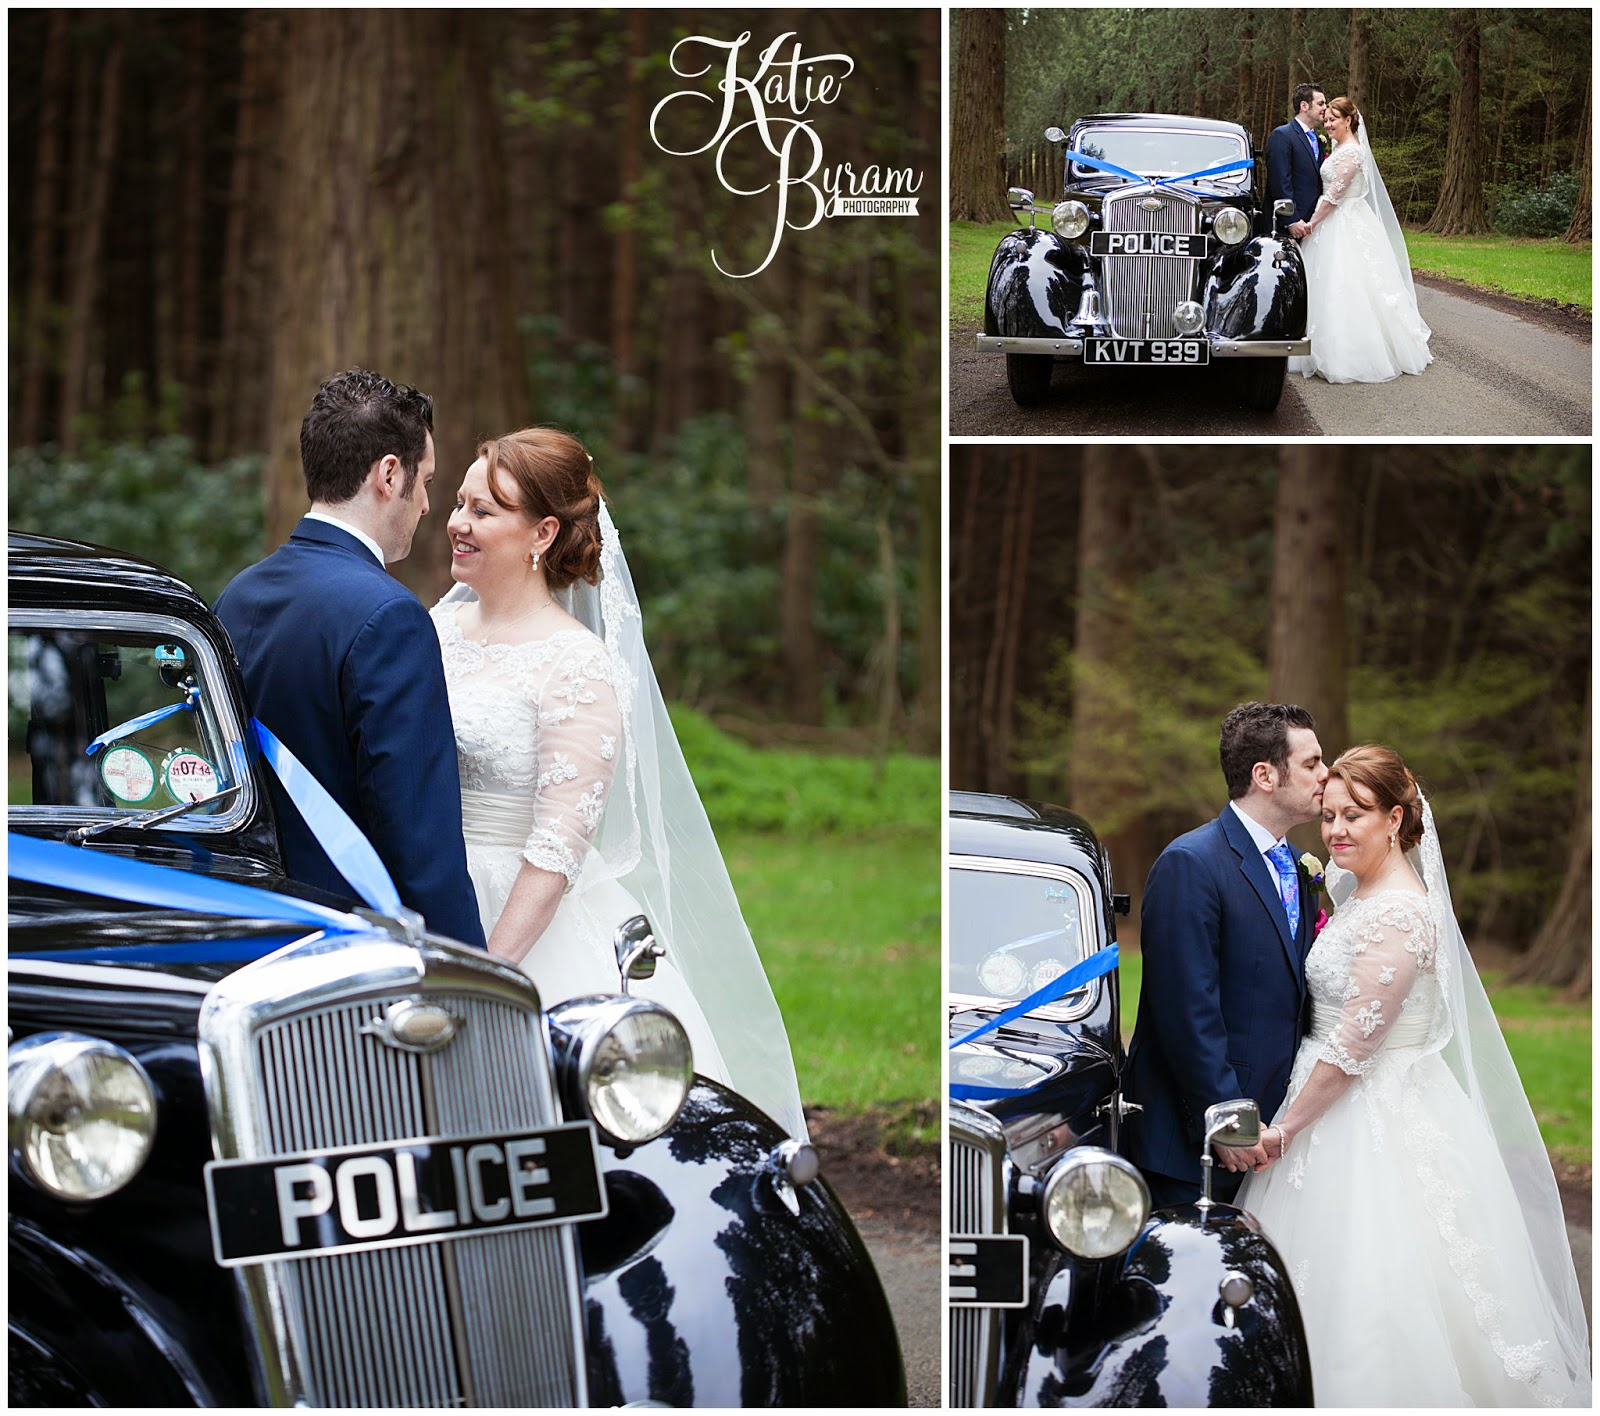 wedding police car, police car vintage, brooklands wedding cars, minsteracres wedding, lord crewe arms wedding, dog at wedding, scoops and smiles, katie byram photography, ice cream van hire newcastle, newcastle wedding photography, relaxed wedding photography, quirky, 50